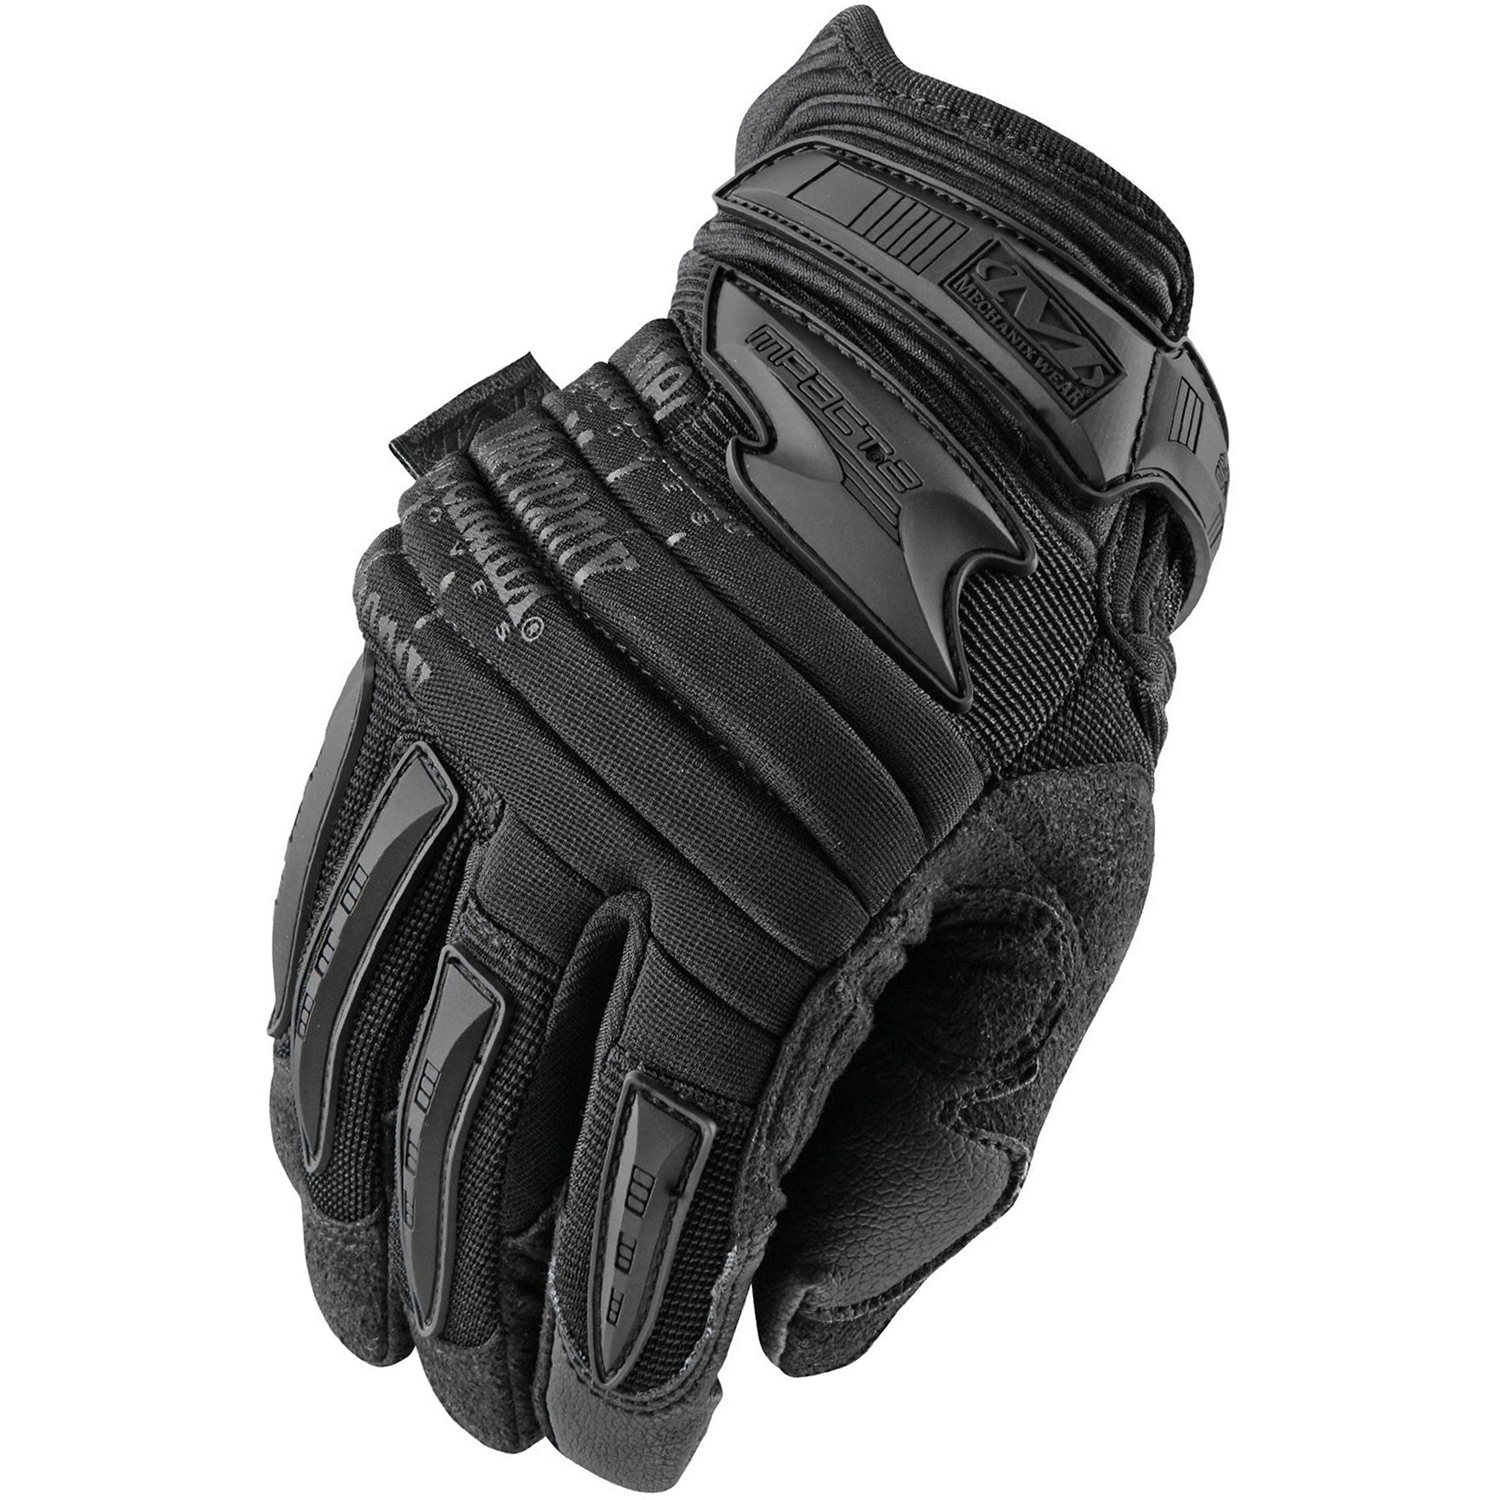 Leather work gloves m pact 2 - Our Top Pick